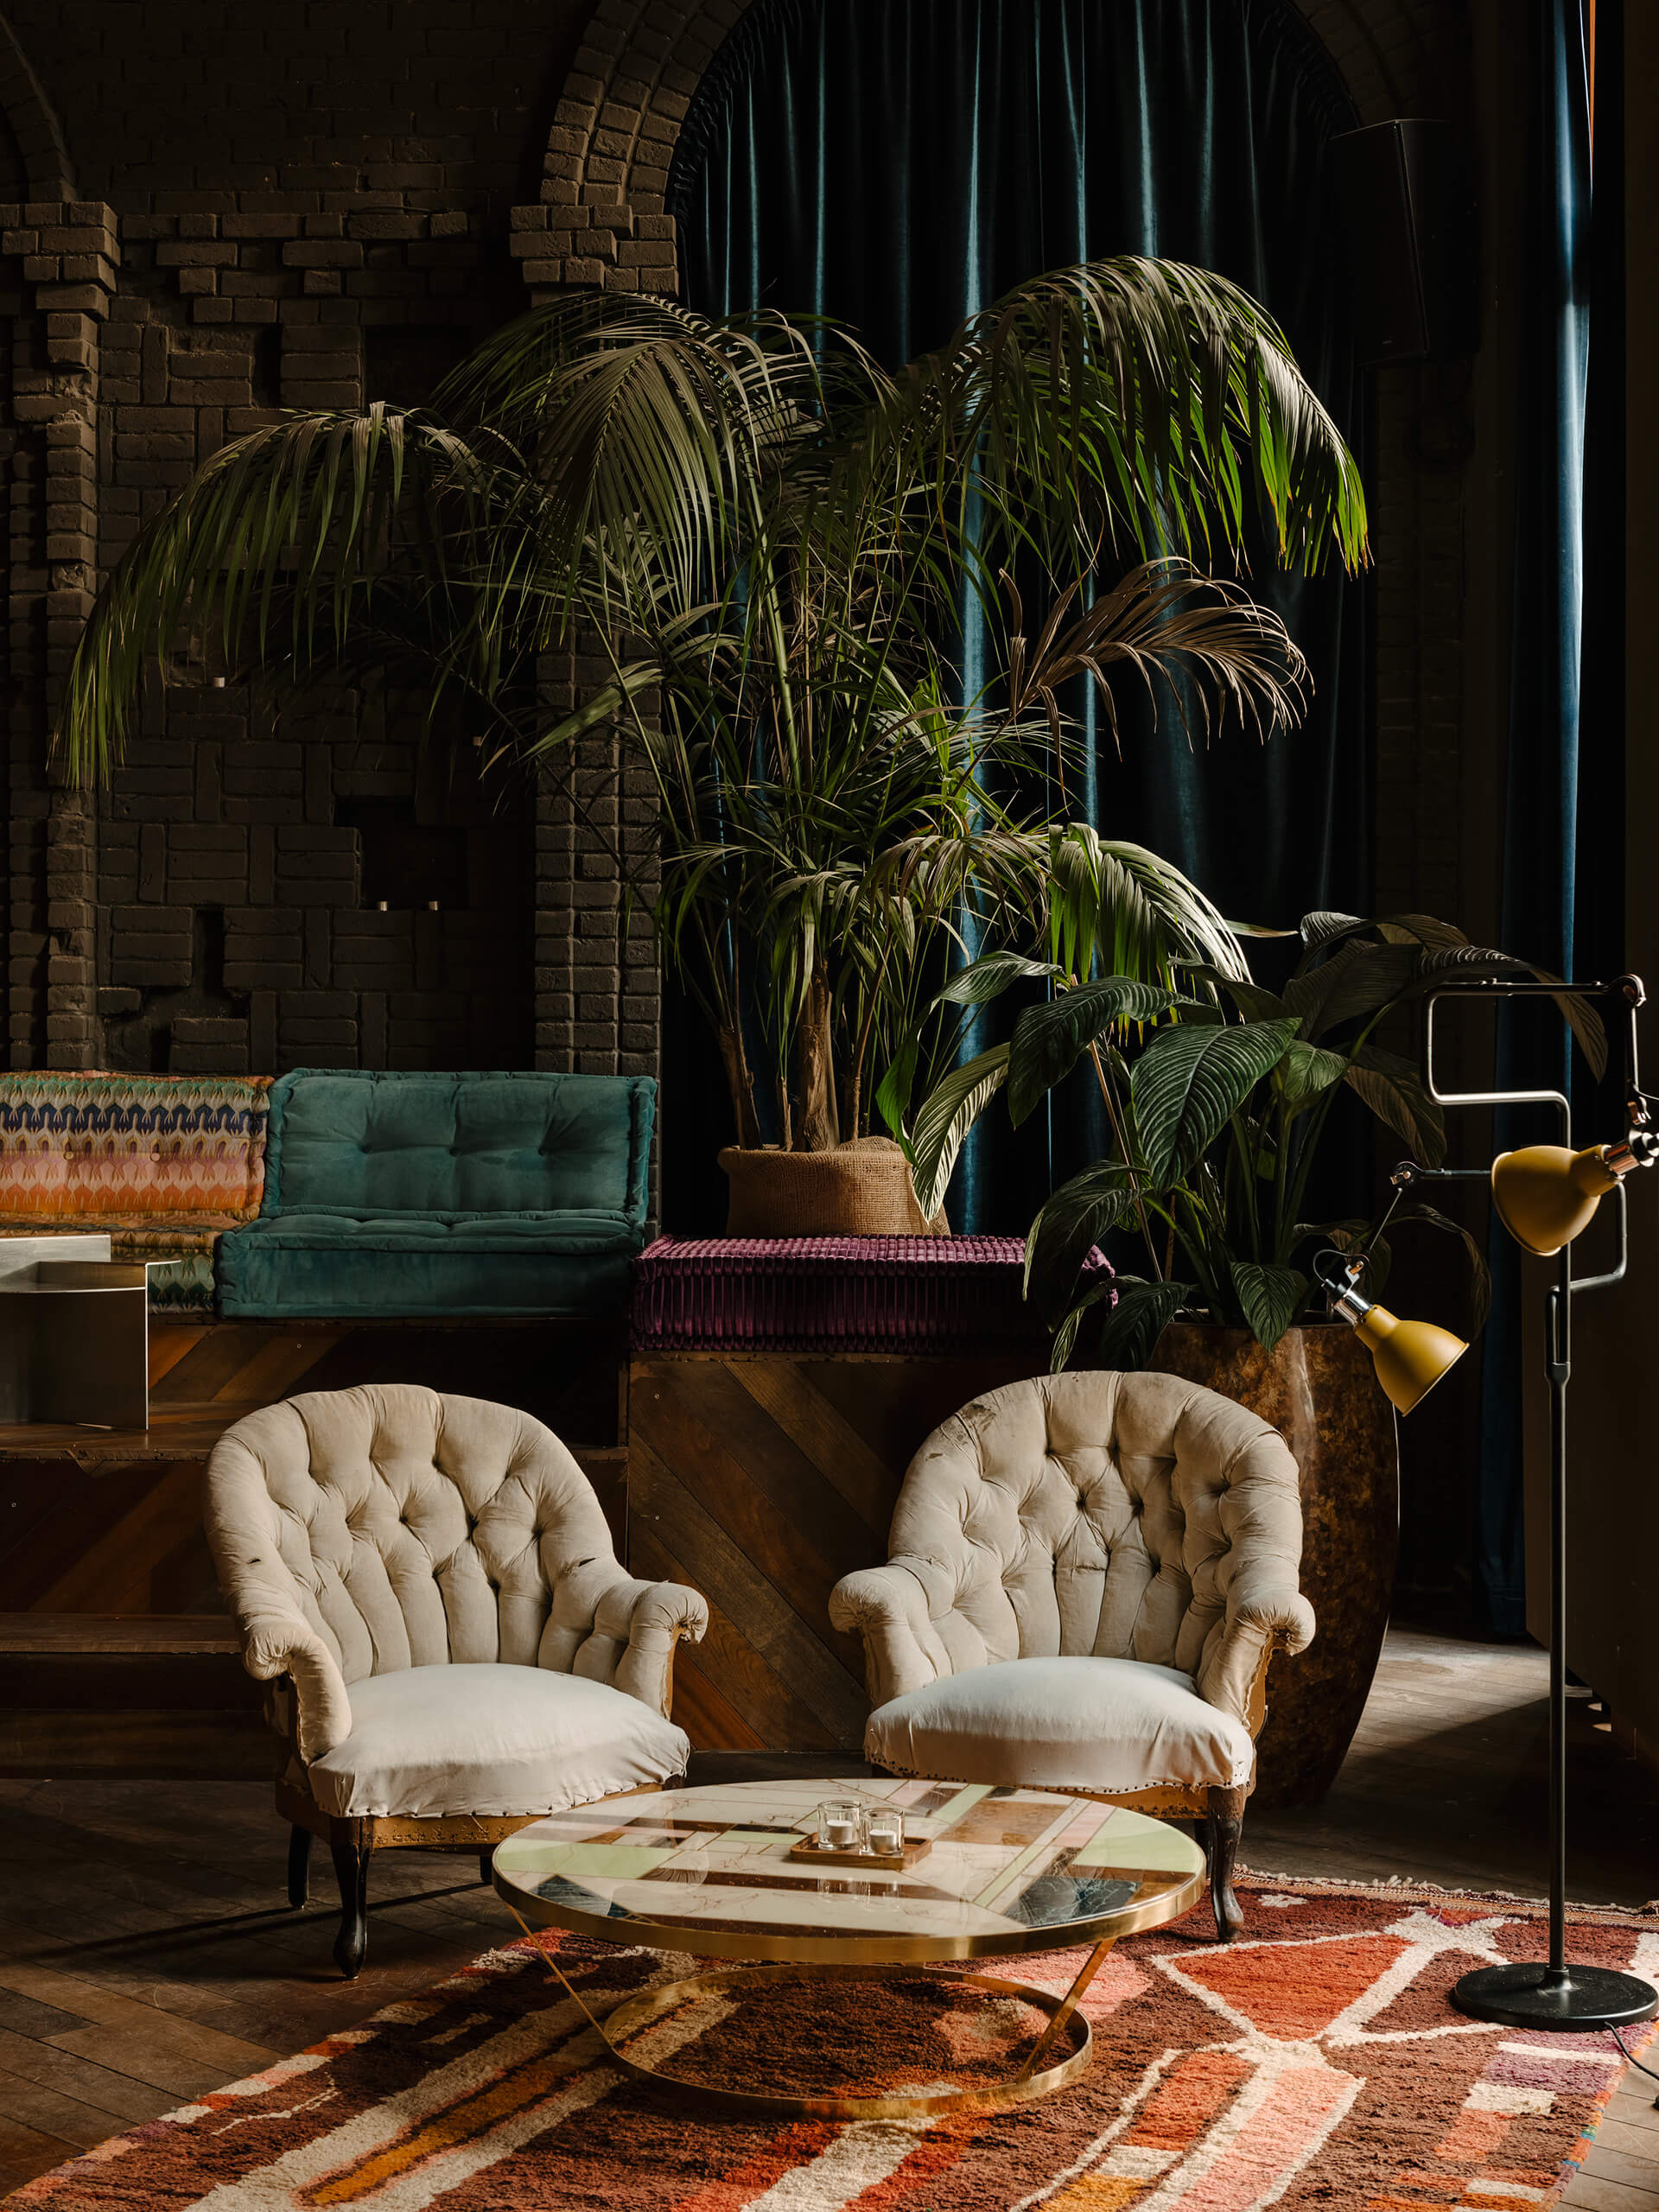 Furniture and plants add colour to the dusky interiors | KINK Bar and Restaurant by Oliver Mansaray and Daniel Scheppan | STIRworld